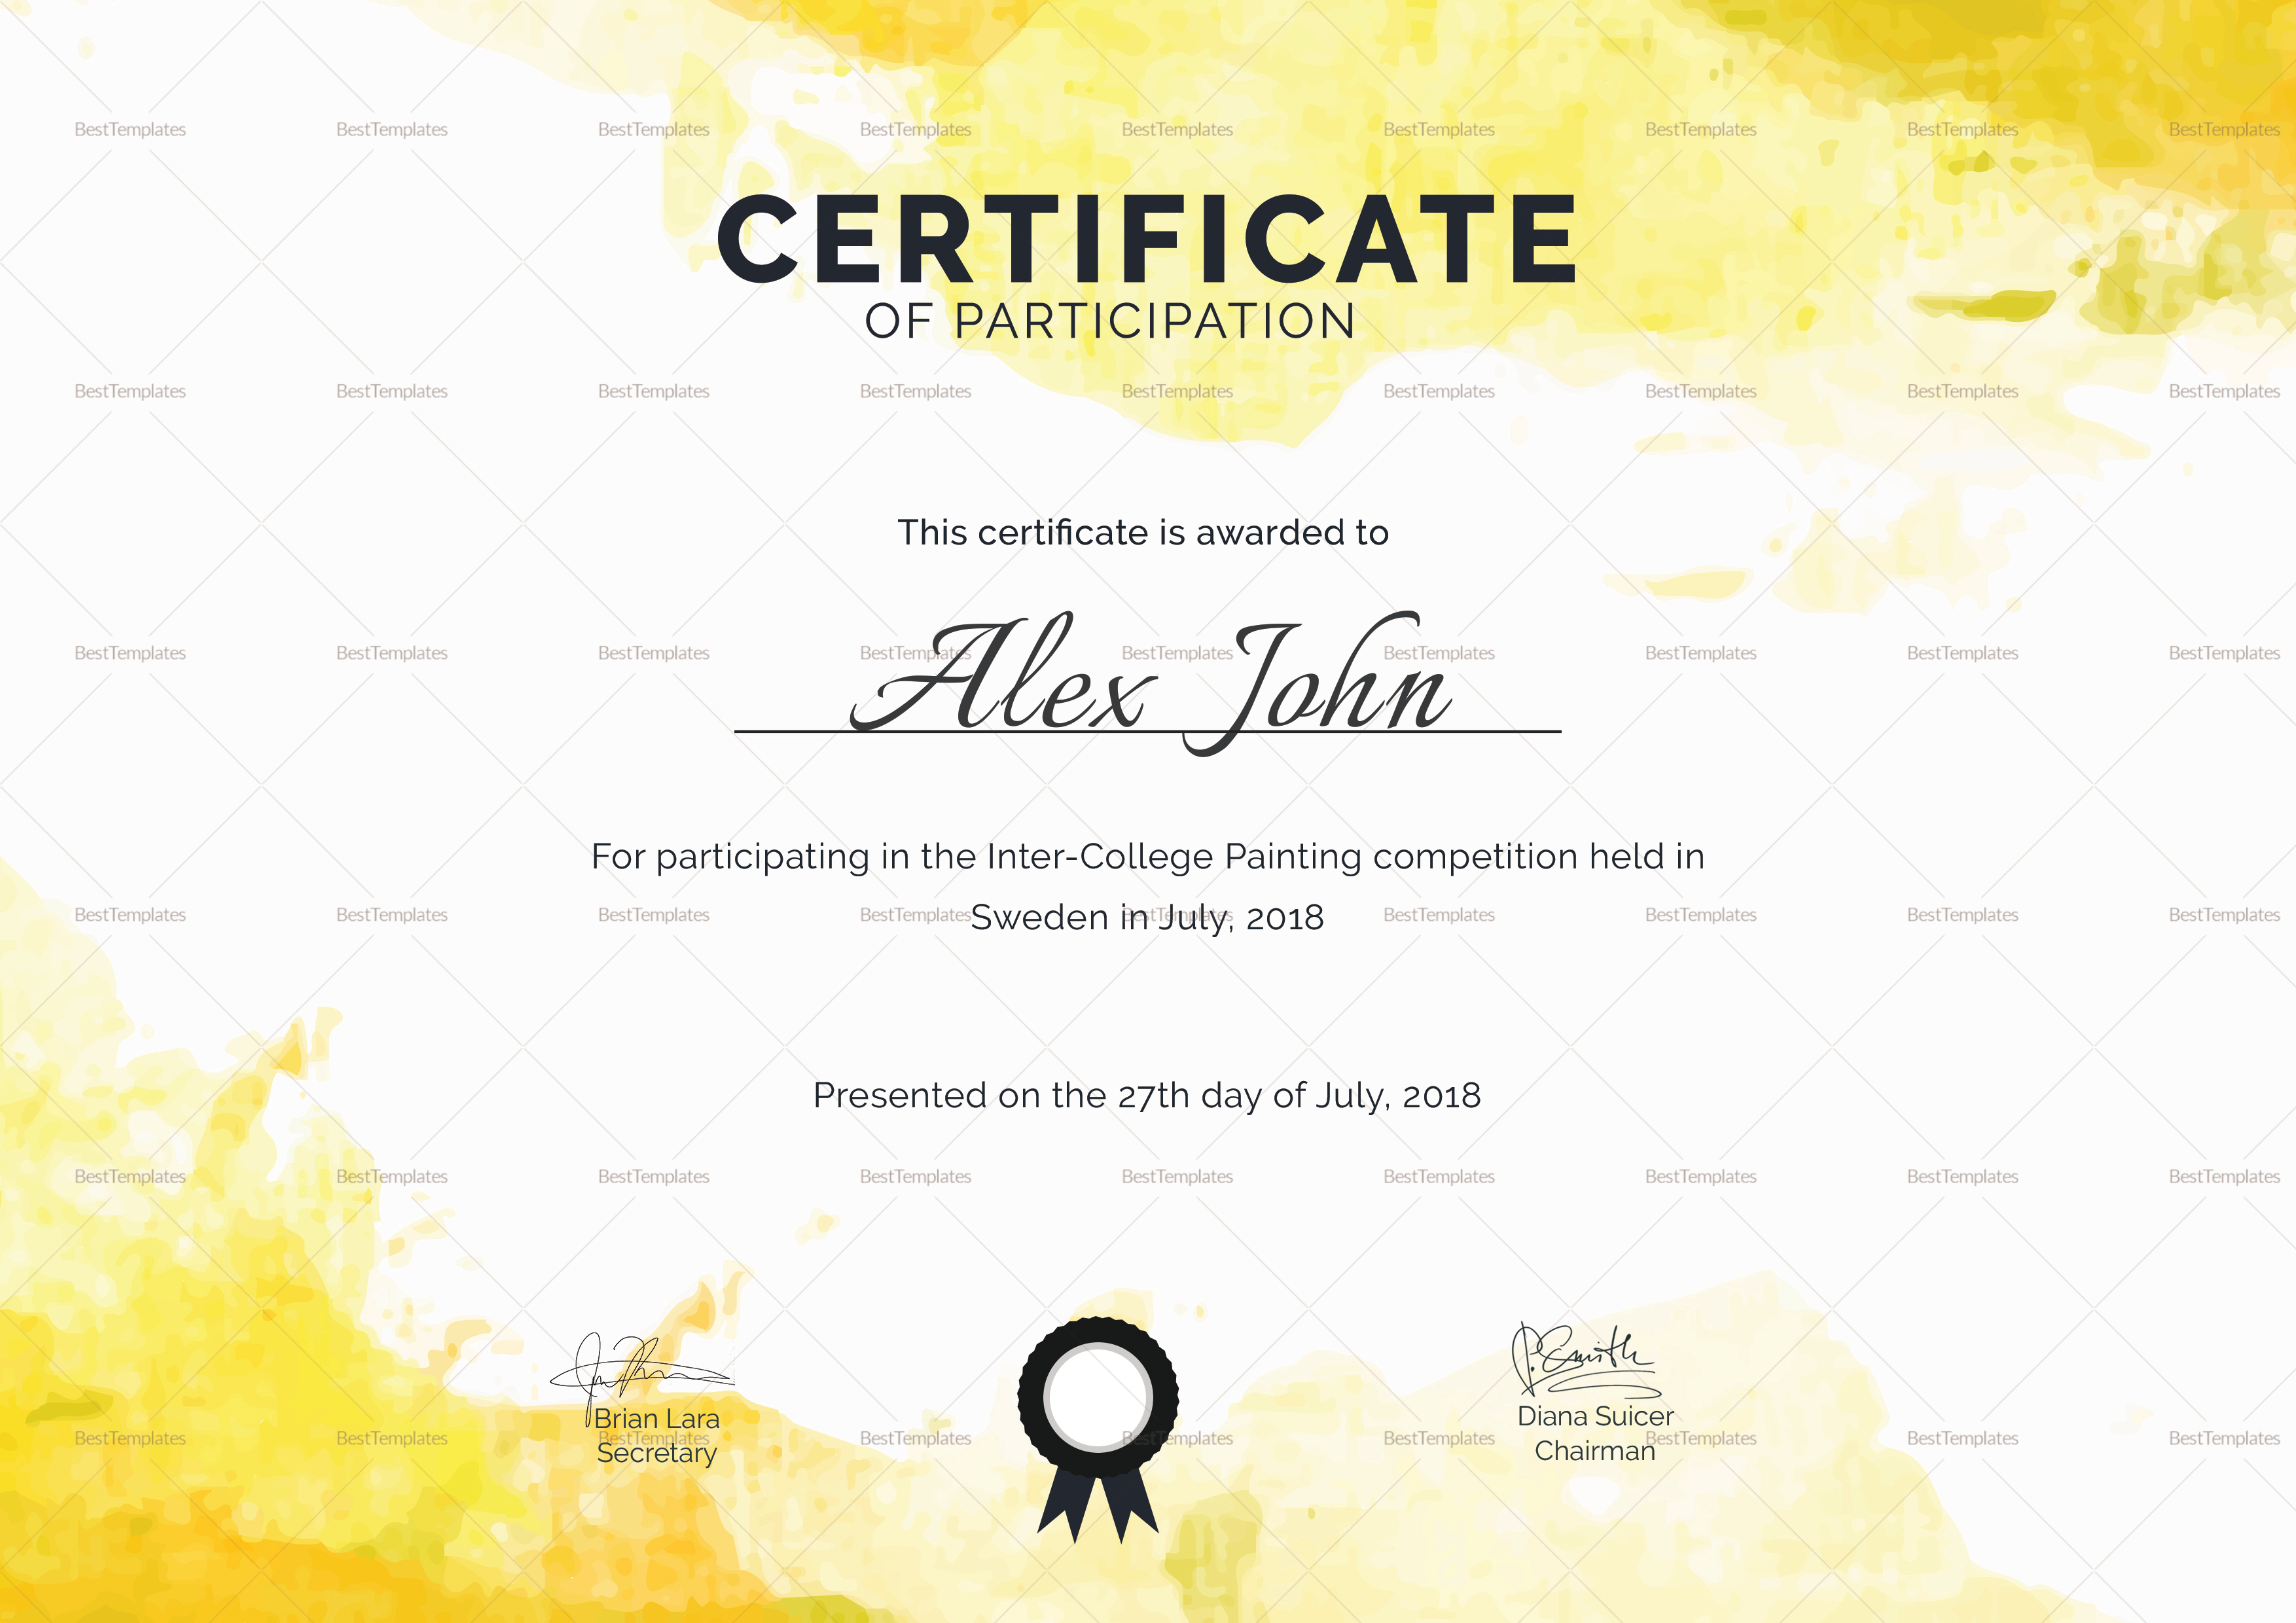 Painting Participation Certificate Design Template